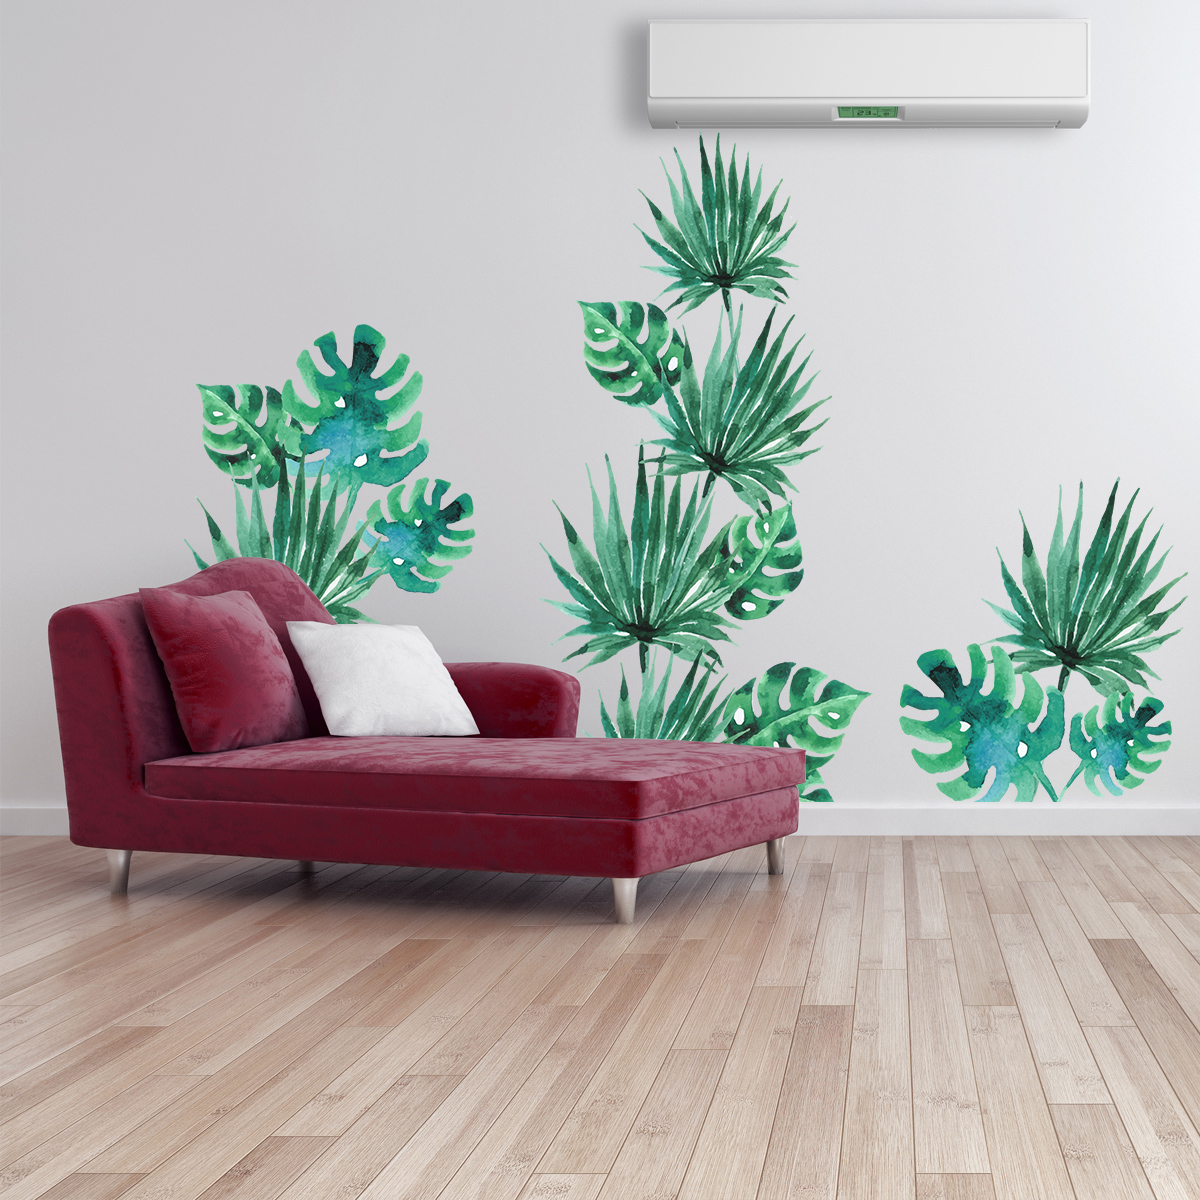 Sticker feuilles tropicales  Stickers STICKERS NATURE Feuilles  Ambiancesticker